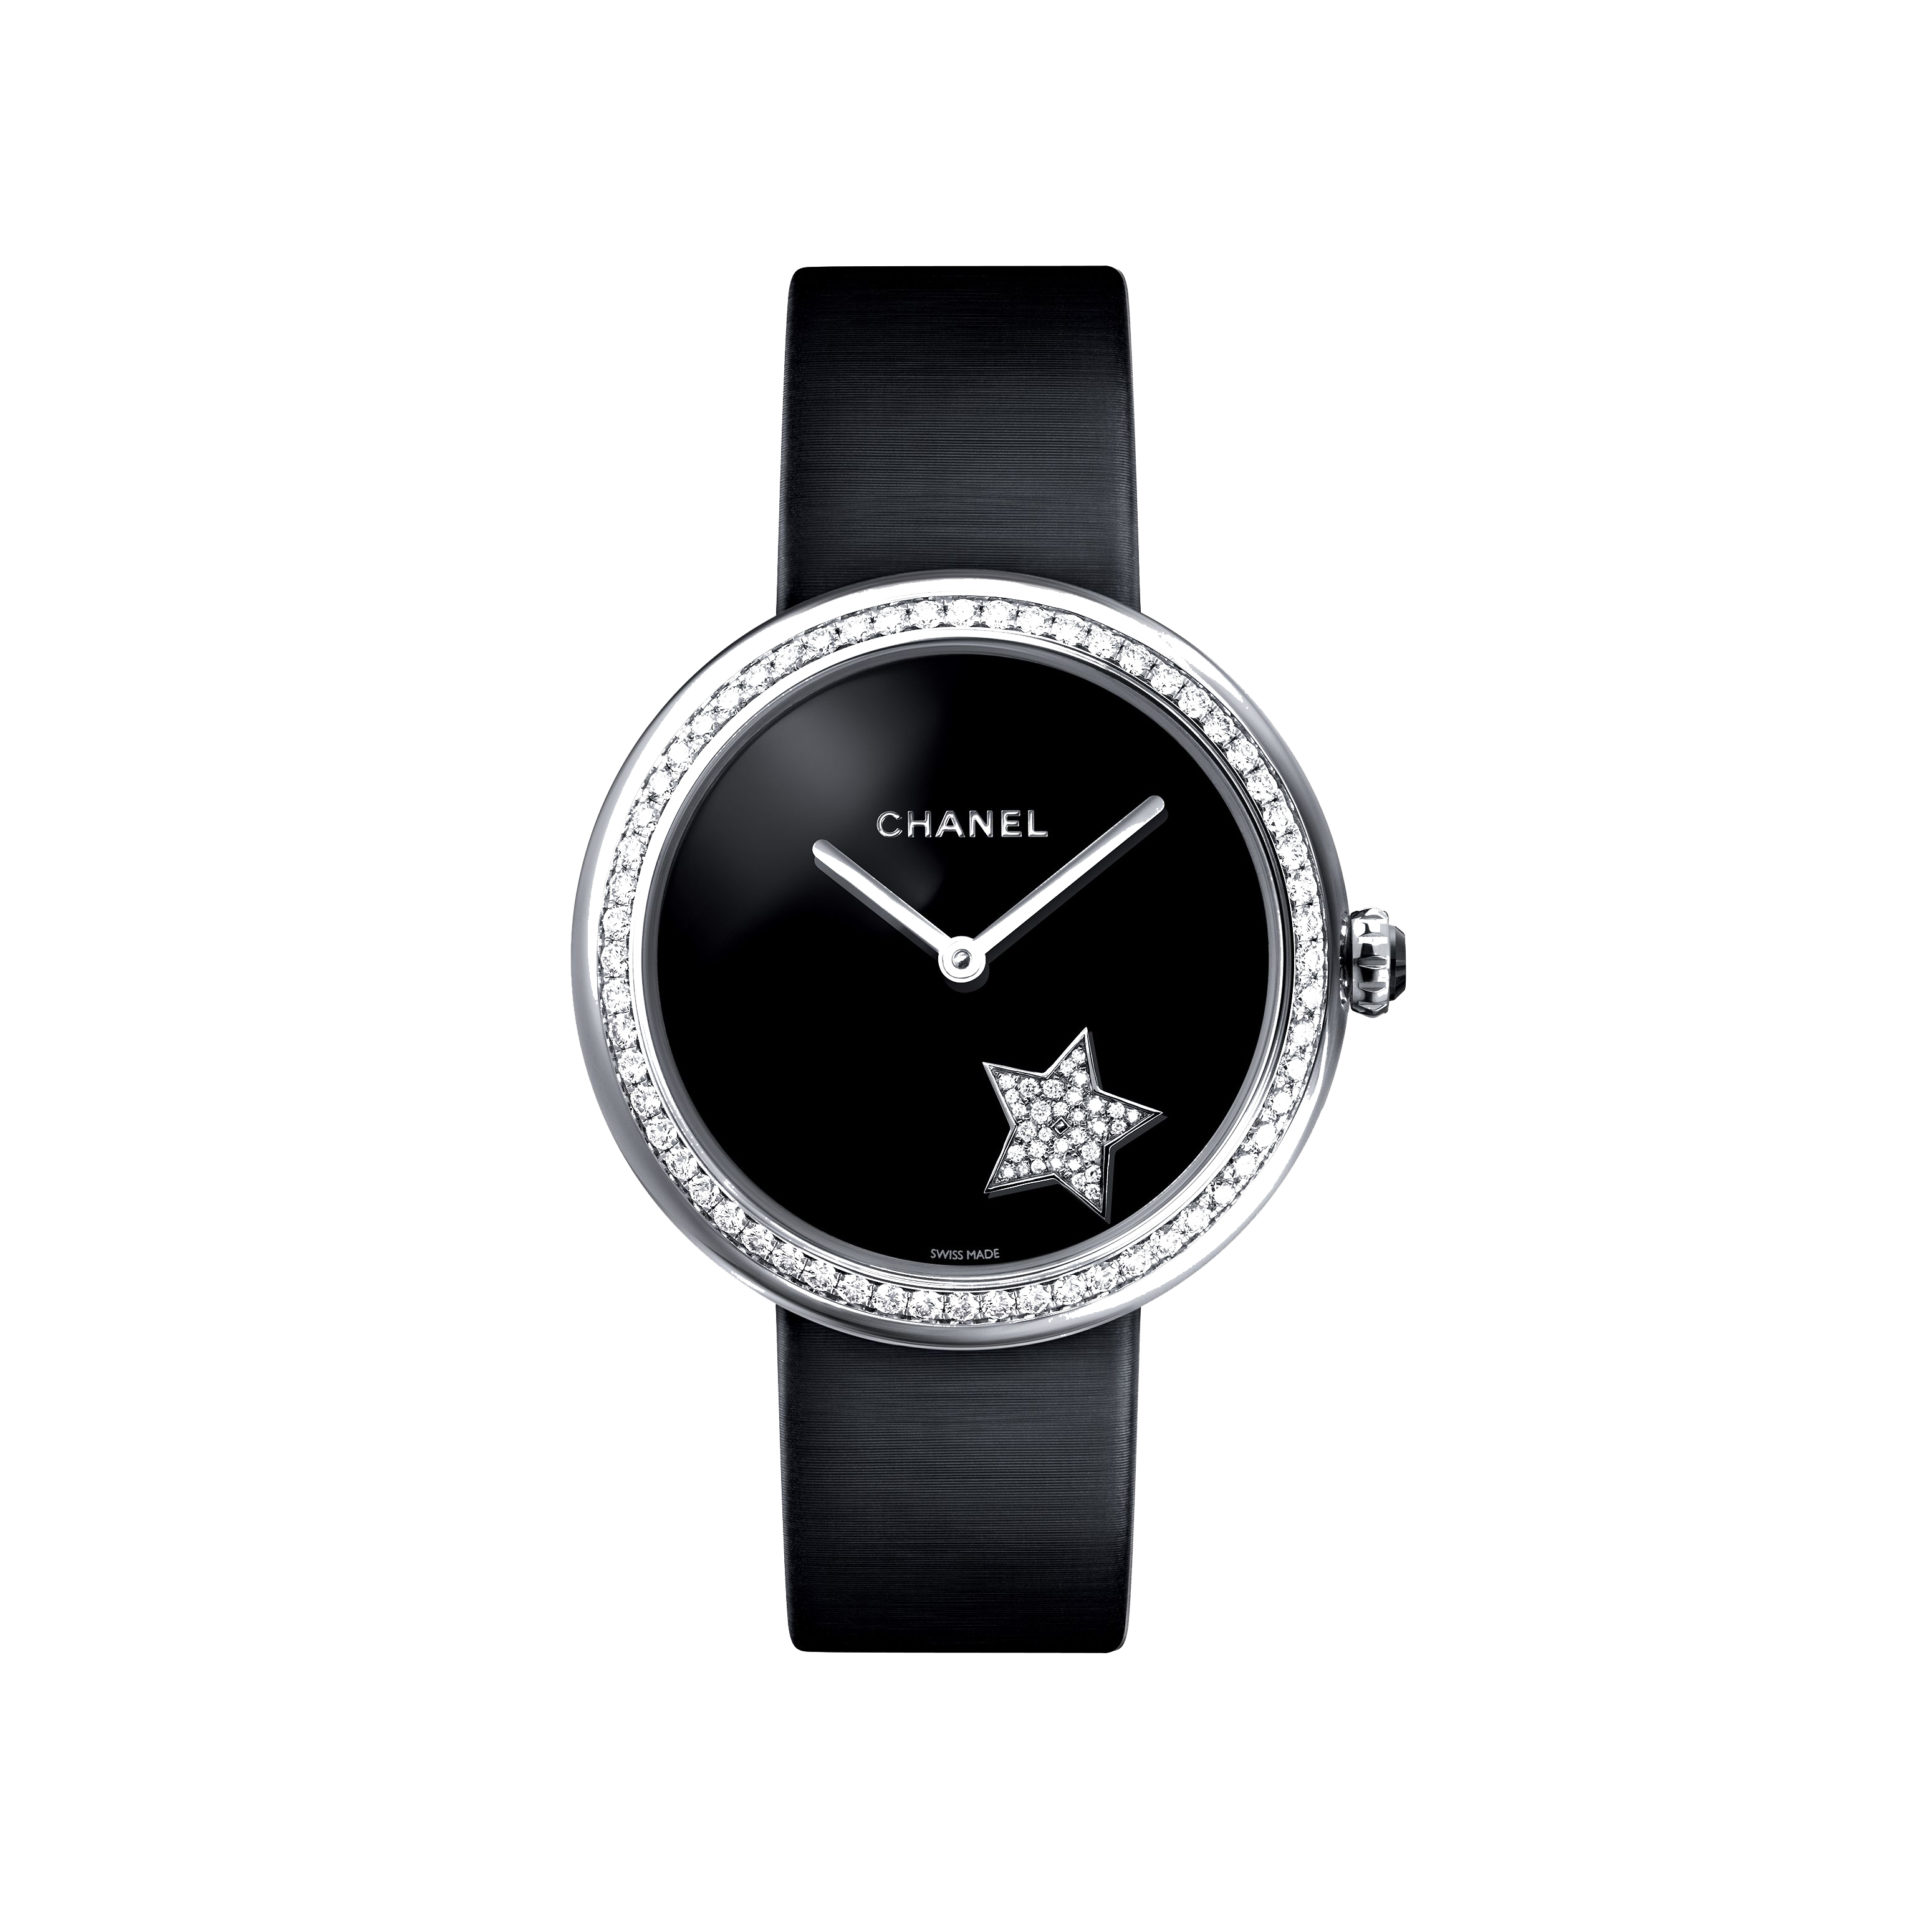 Chanel-Mademoiselle-Privé-Hall-of-Time-H2928